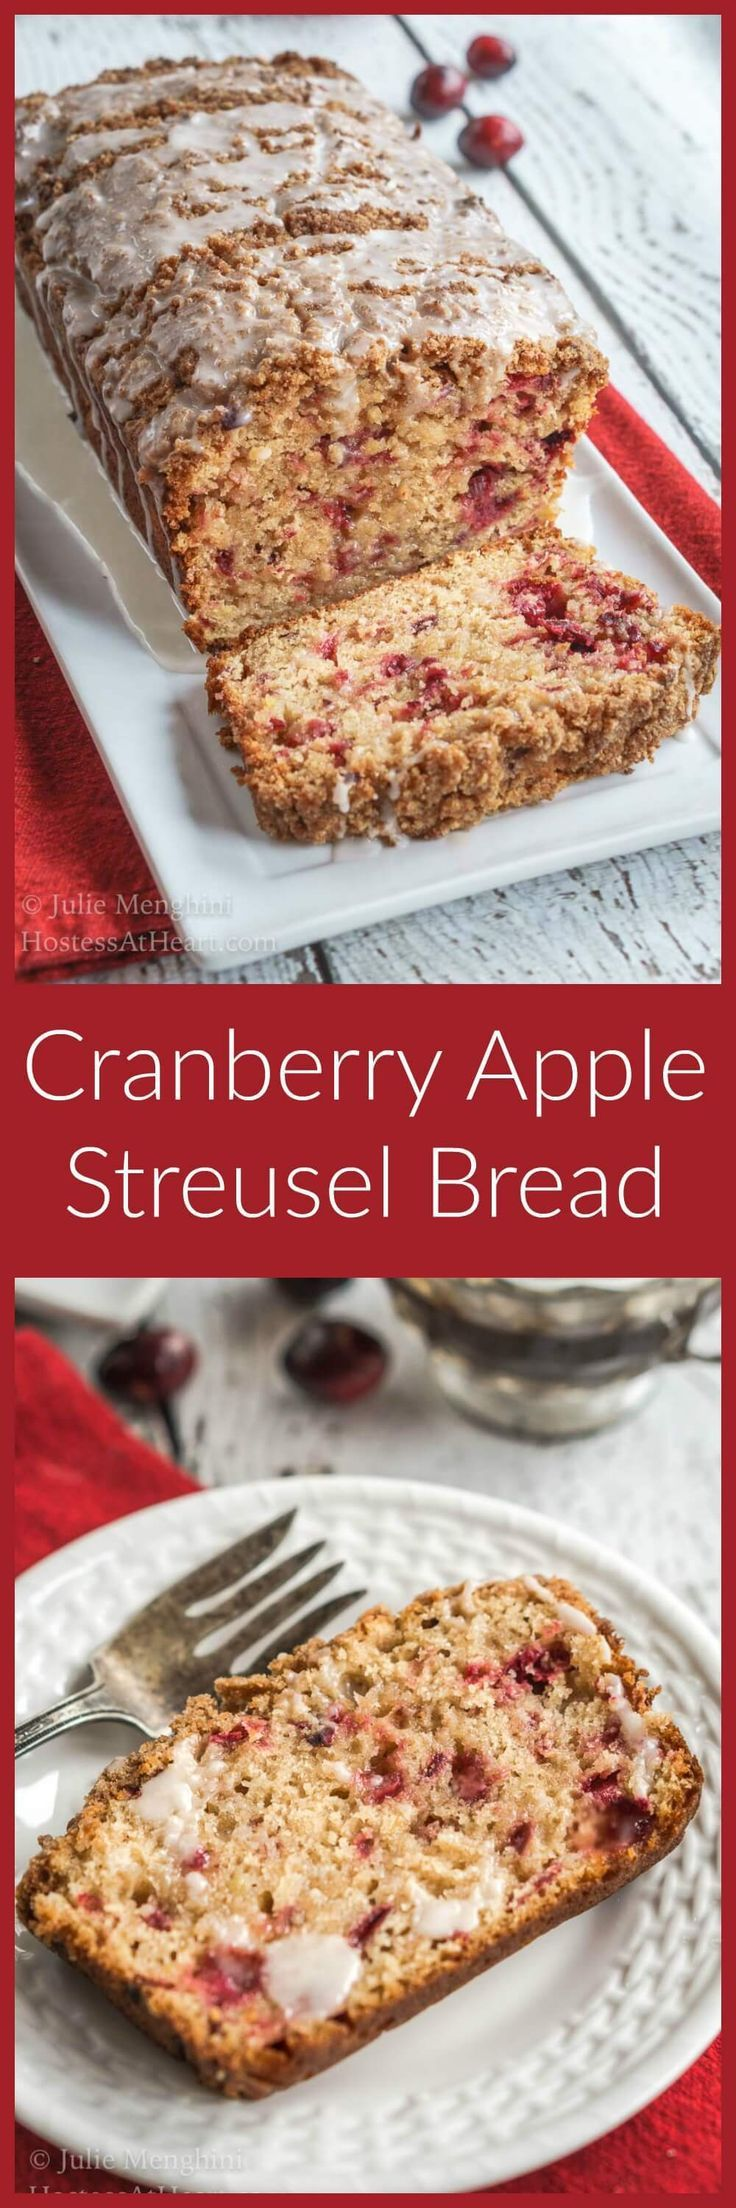 Cranberry Apple Streusel Bread has a delicious soft center dotted with cranberry and apple. This bread is topped with a thick cinnamon brown sugar streusel. | http://HostessAtHeart.com